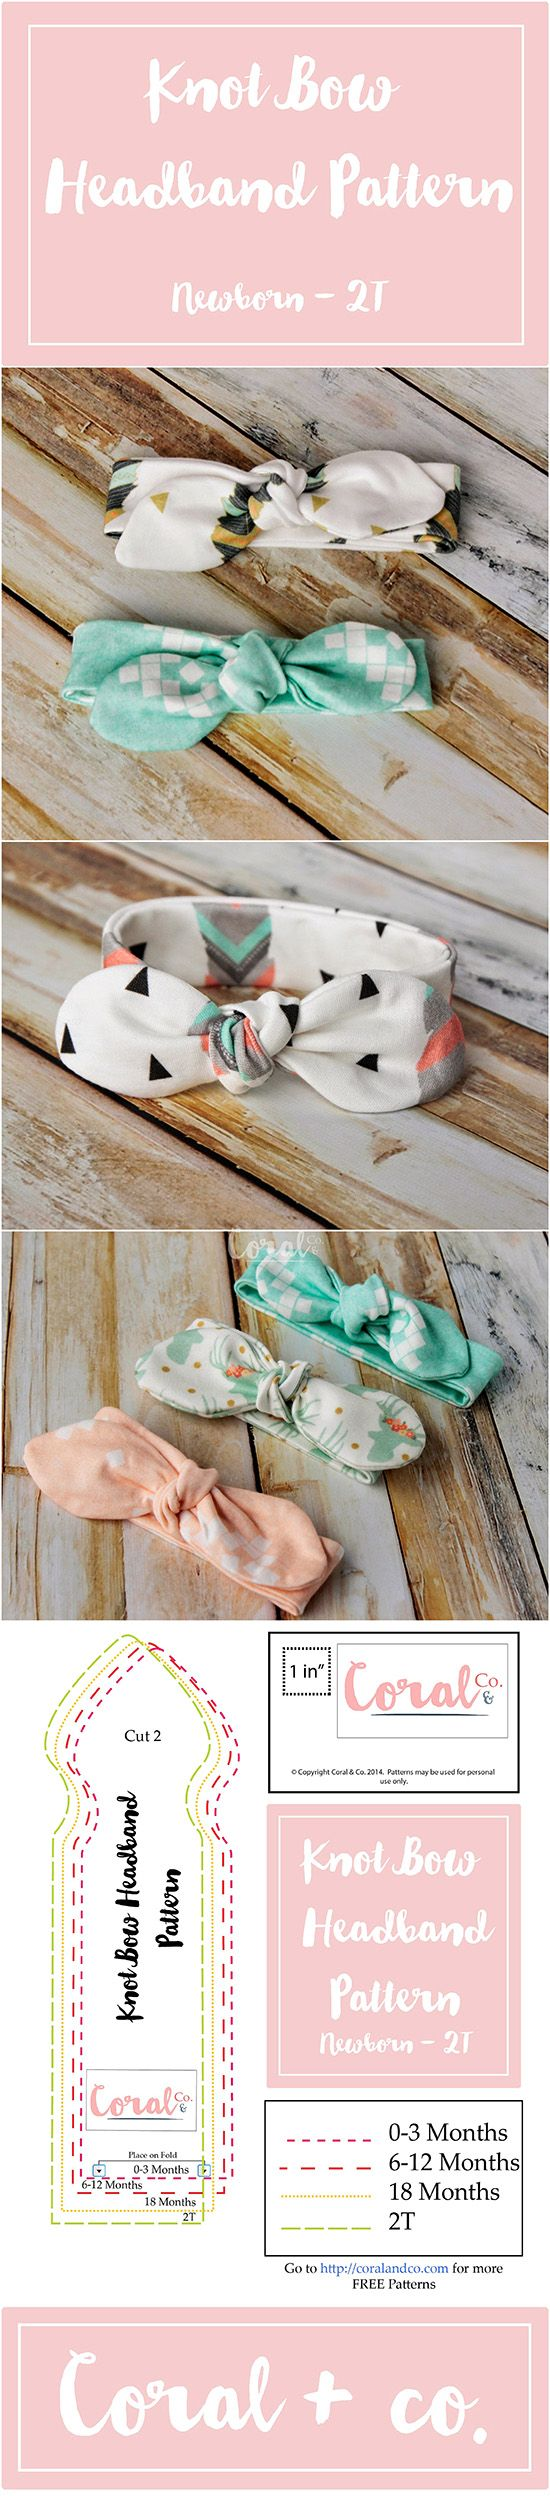 How to Make Knot-Bow Headbands for Babies & Toddlers: An Easy DIY Tutorial with Patterns